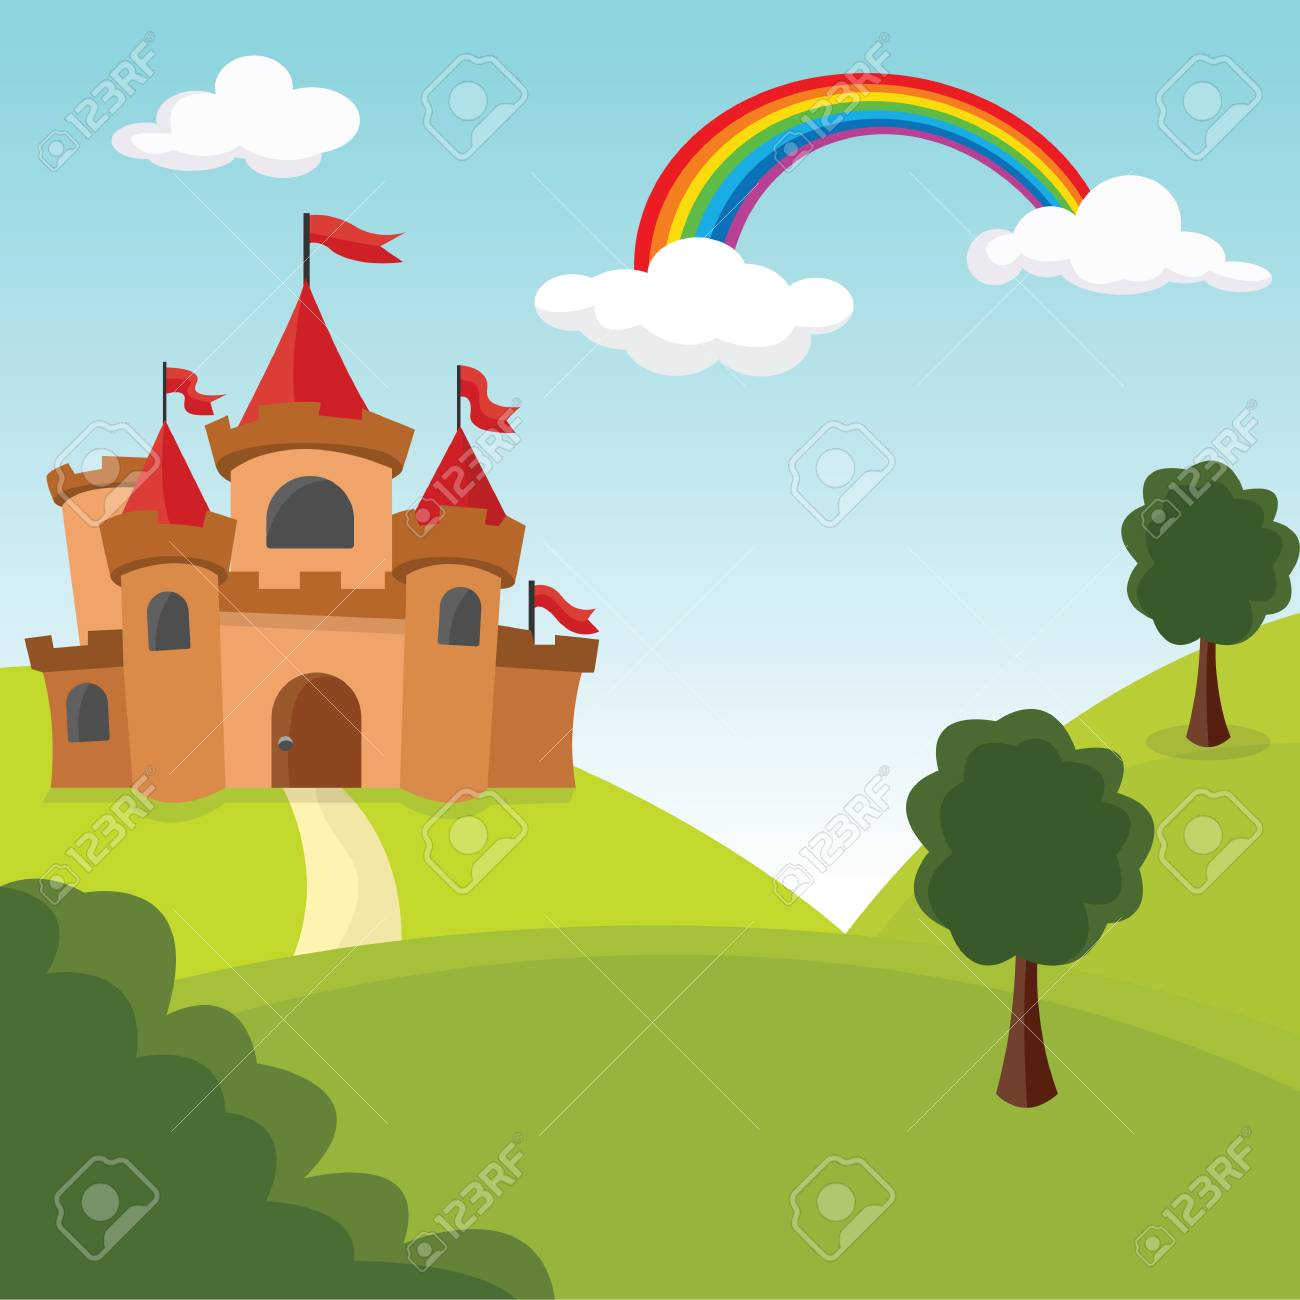 Romantic castle by the hills with trees. Vector Illustration. - 98609107